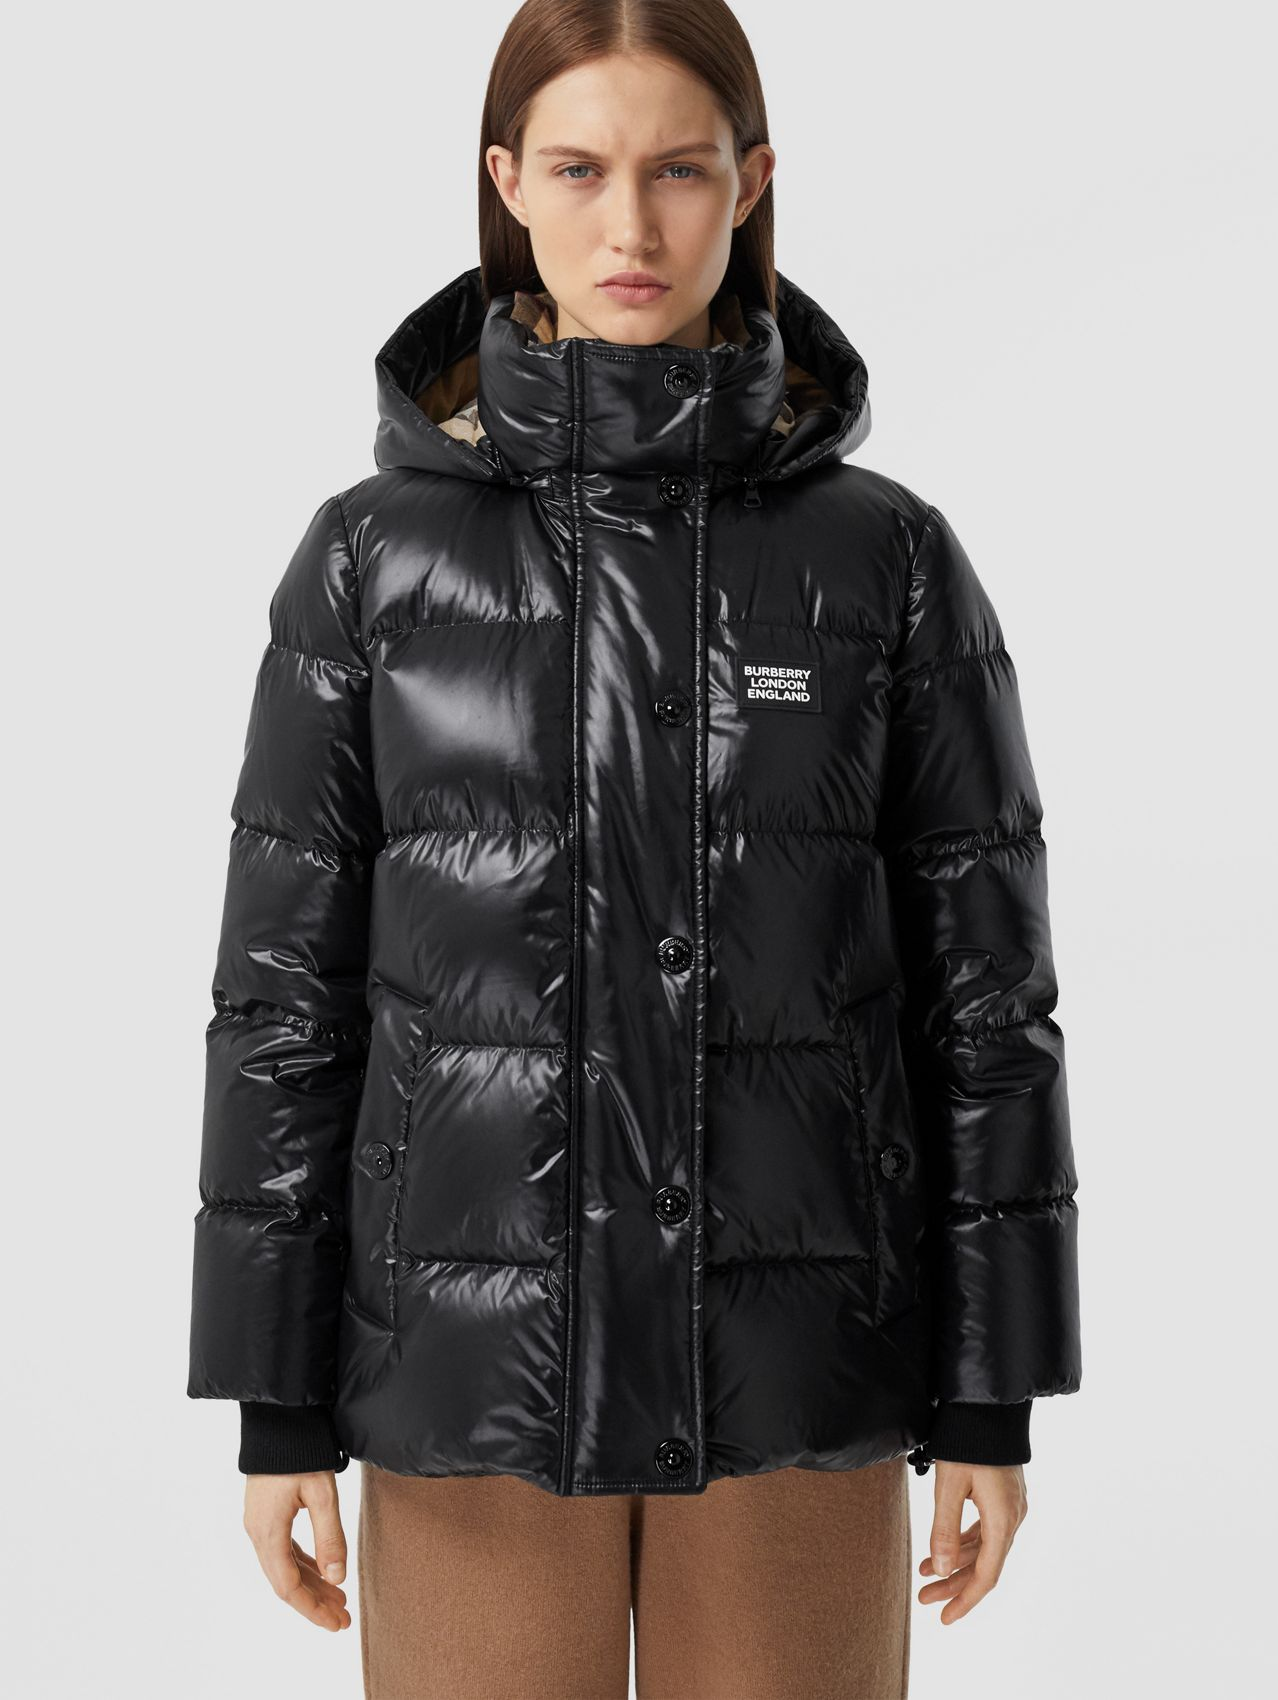 Detachable Hood Logo Appliqué Puffer Jacket in Black